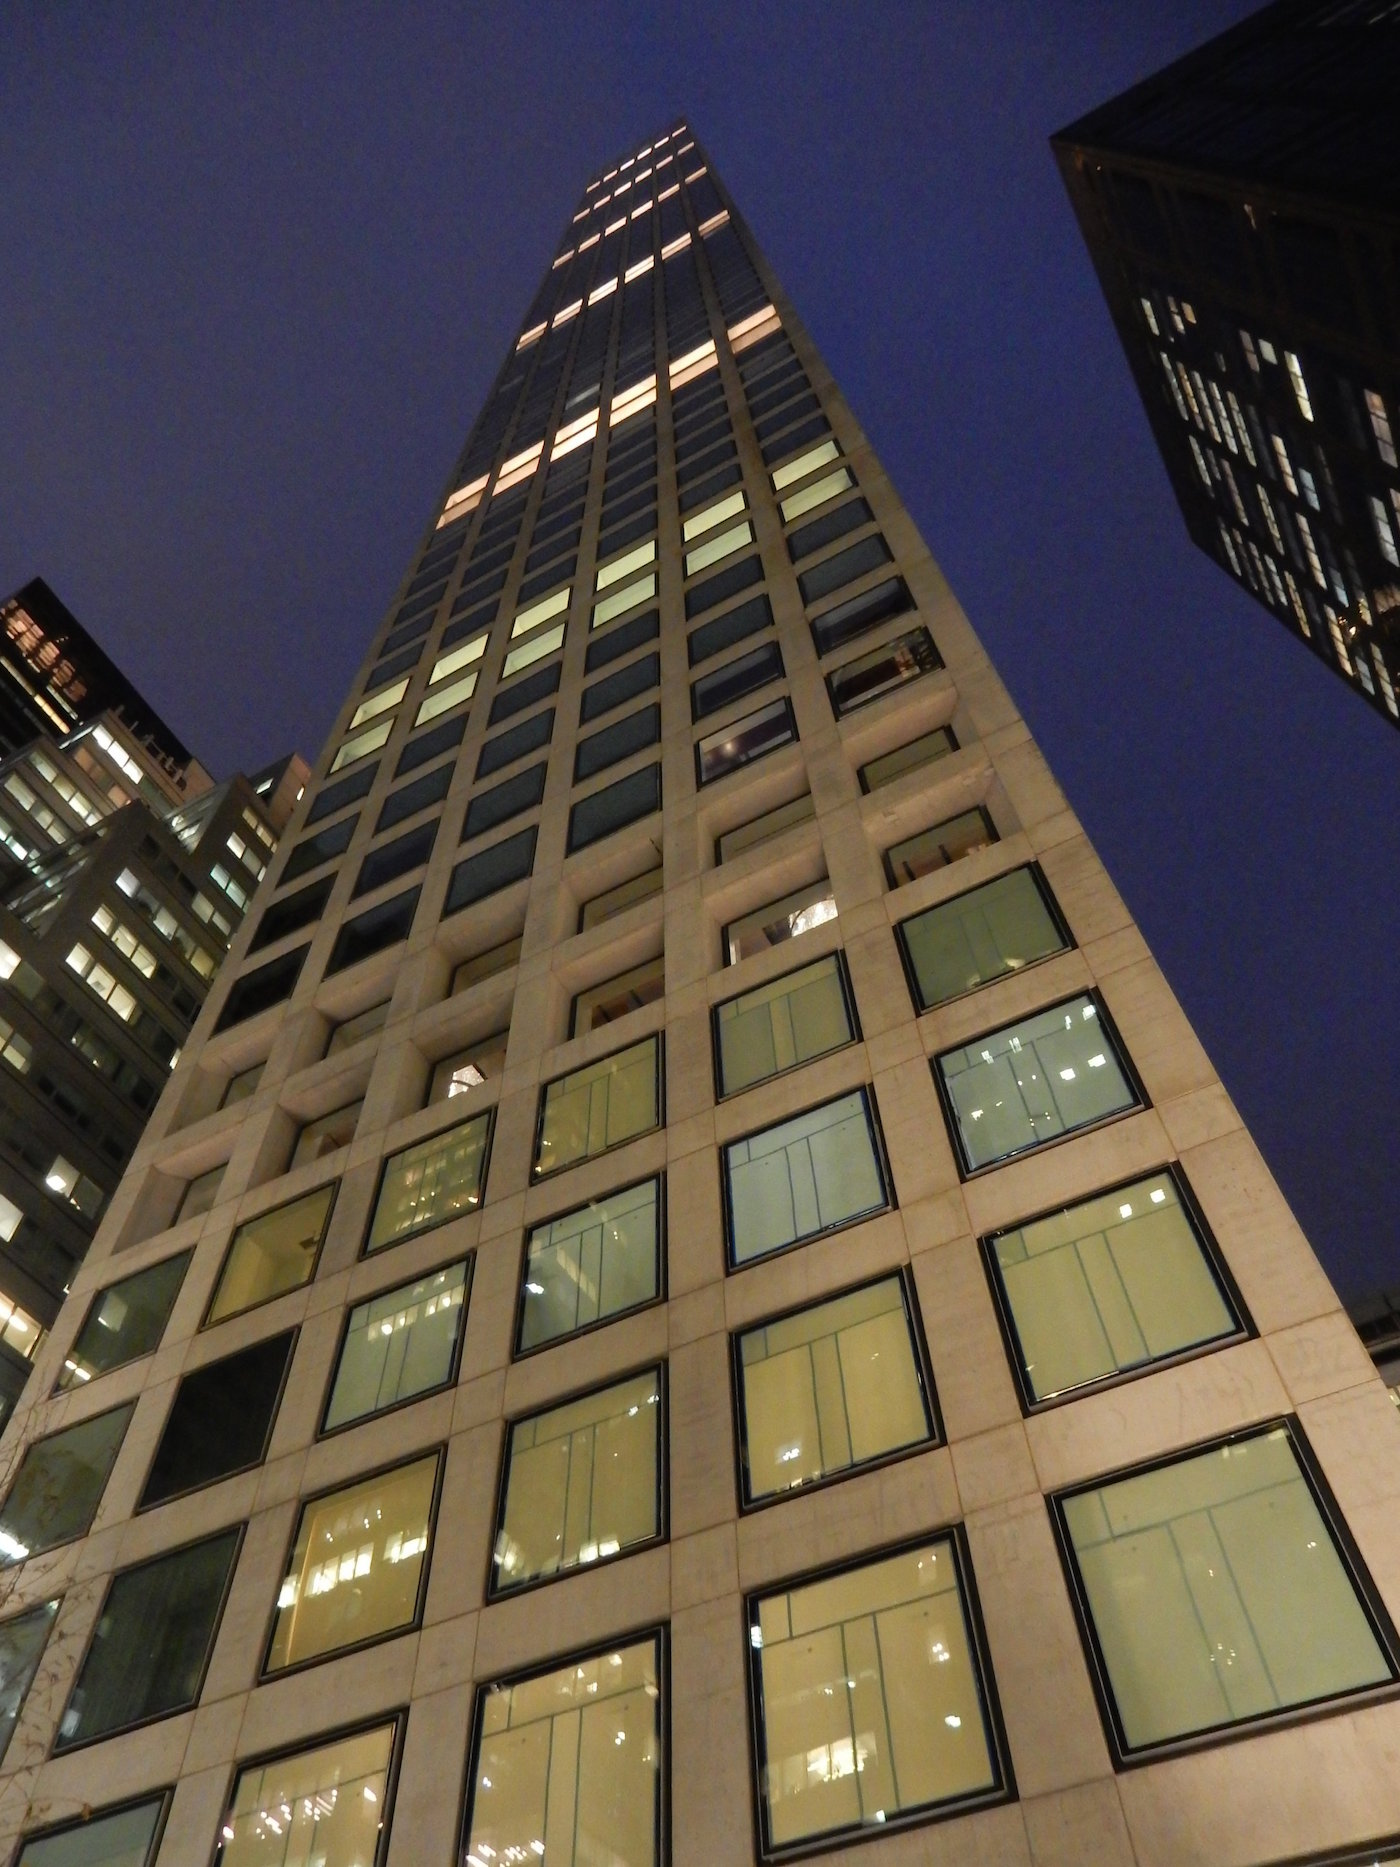 432 Park Avenue, image by Forum contributor towerpower123